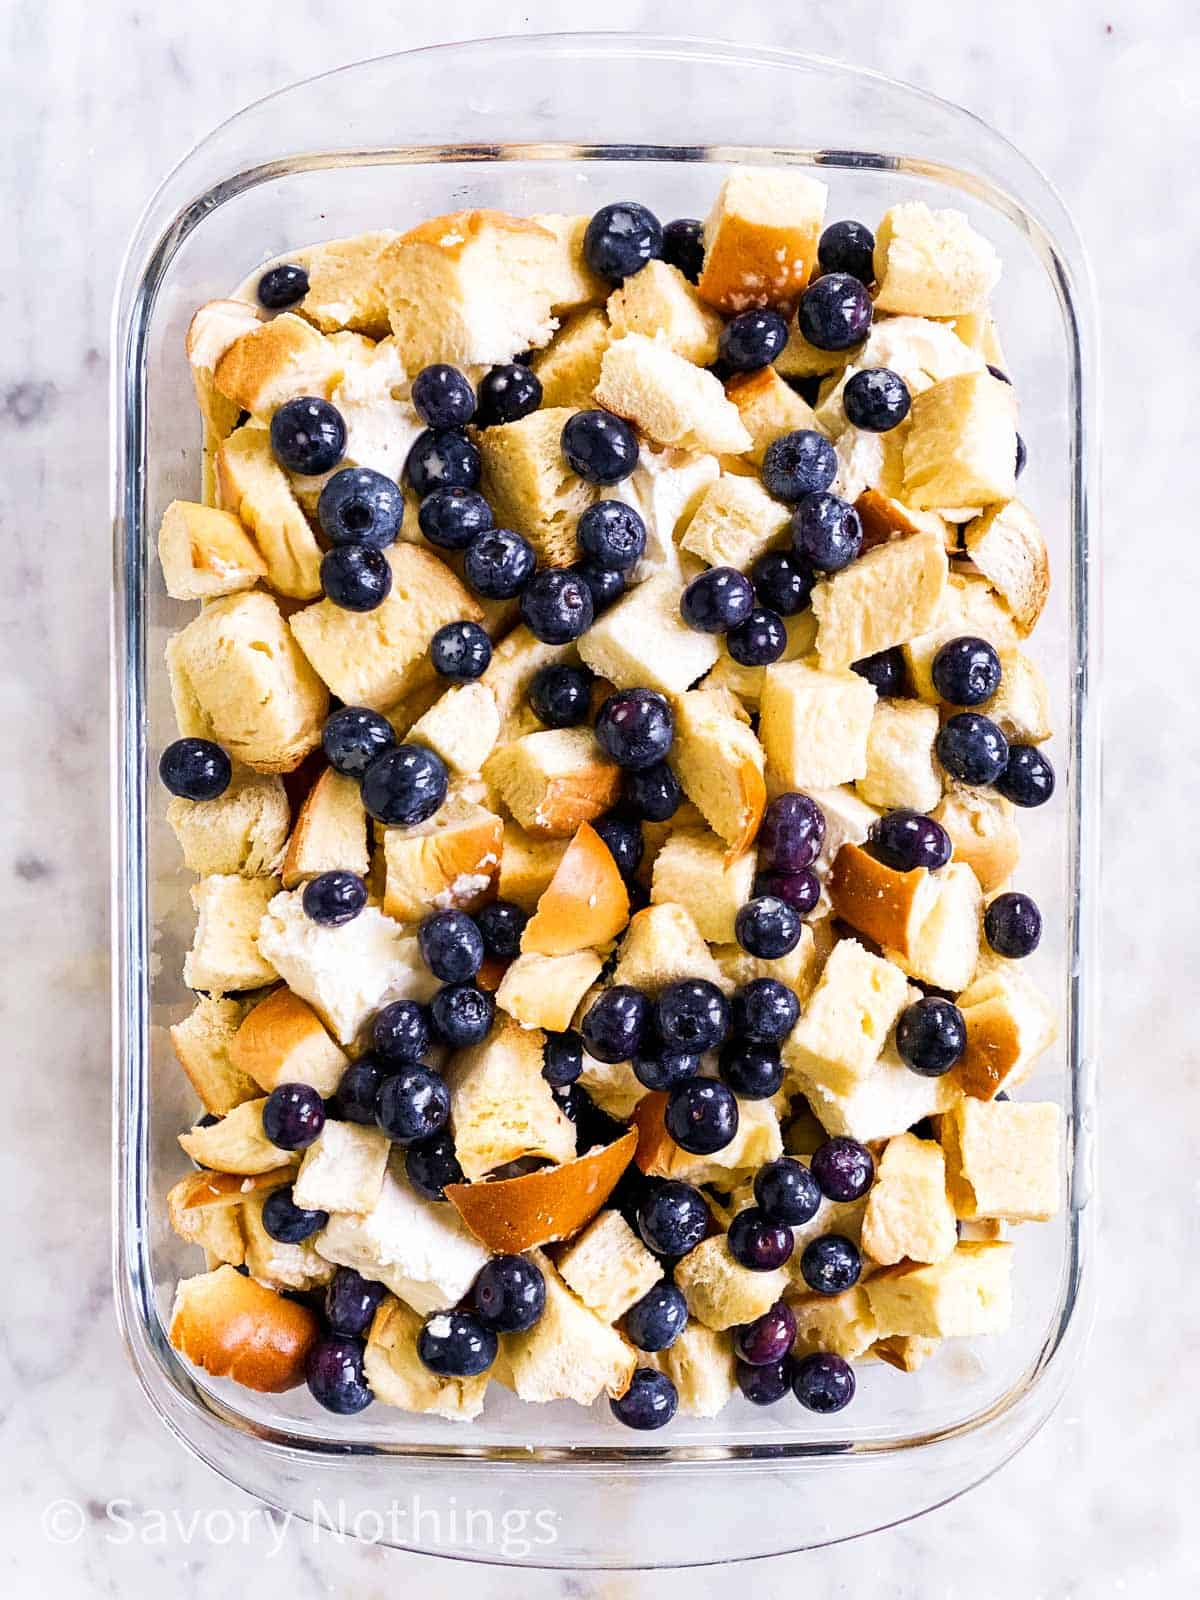 assembled but unbaked blueberry French toast casserole in glass dish sitting on white marble surface